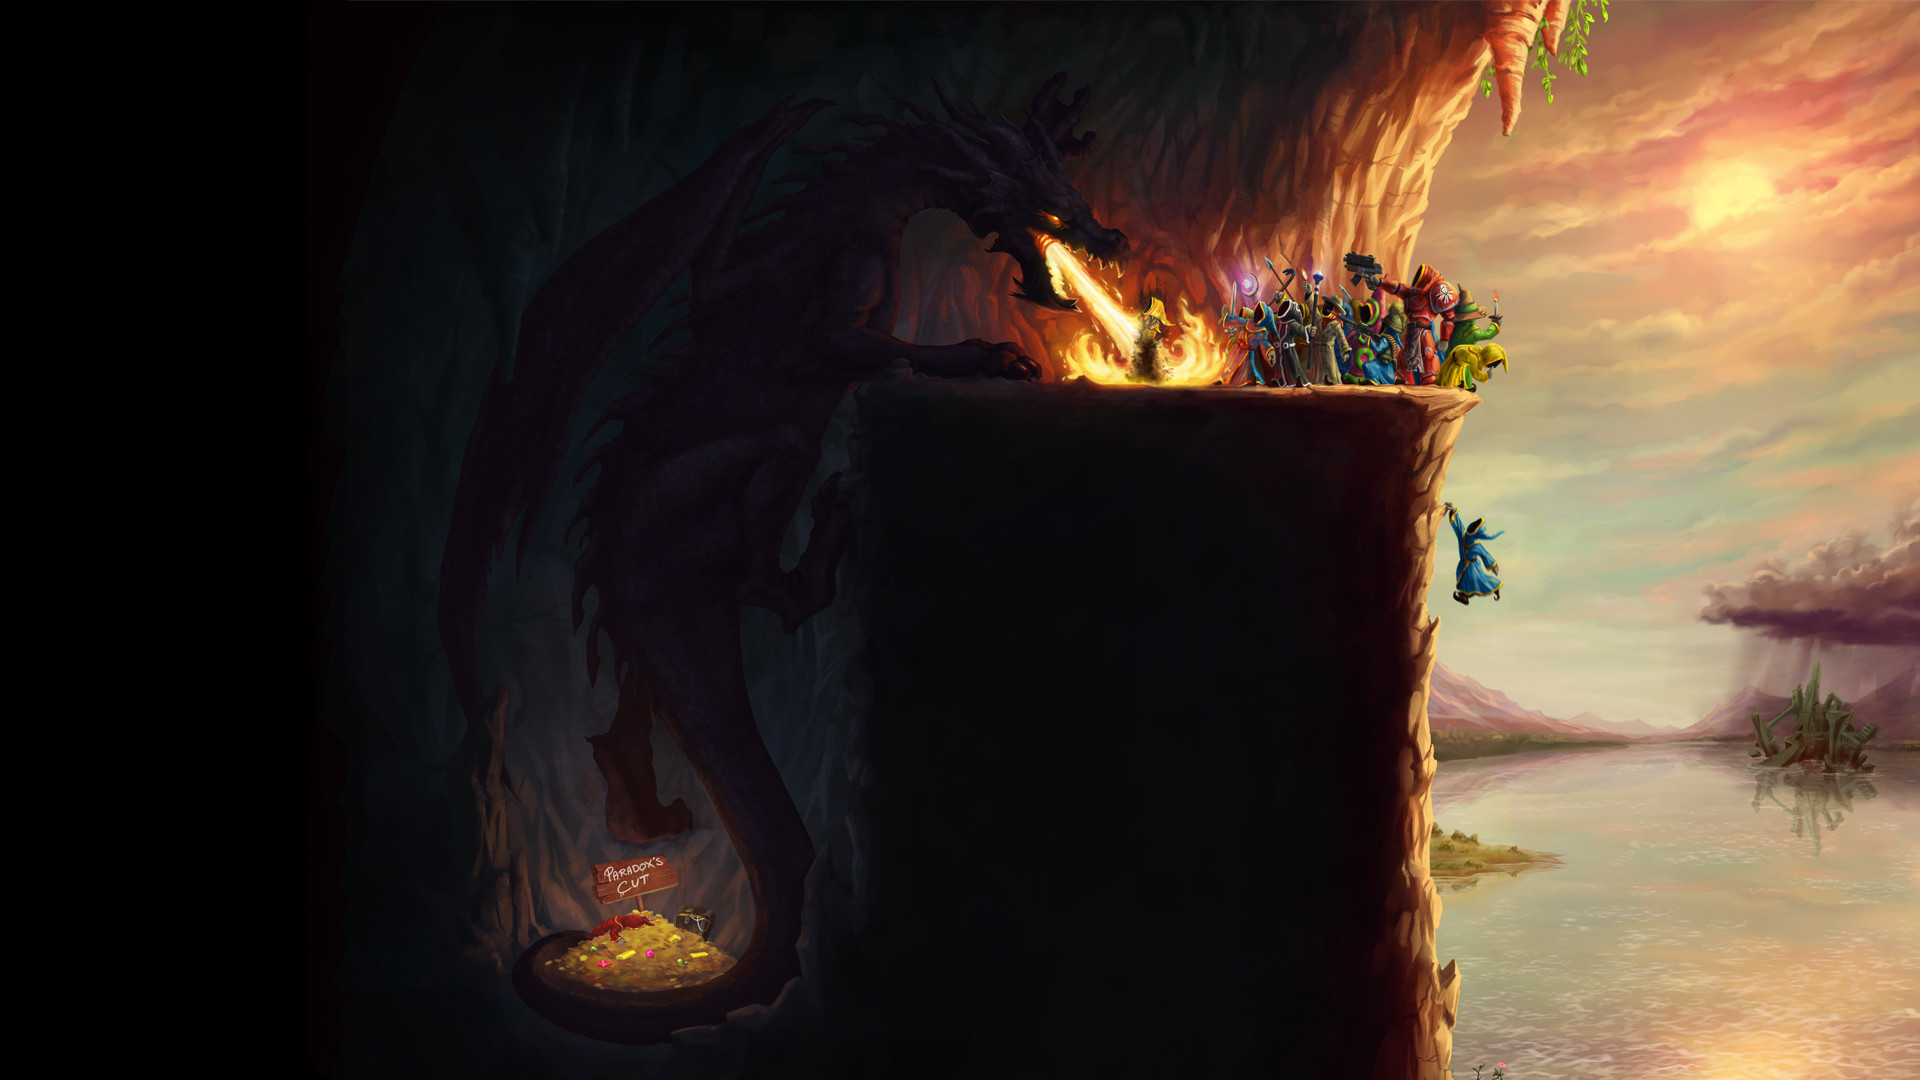 fire mage wallpaper (71+ images)